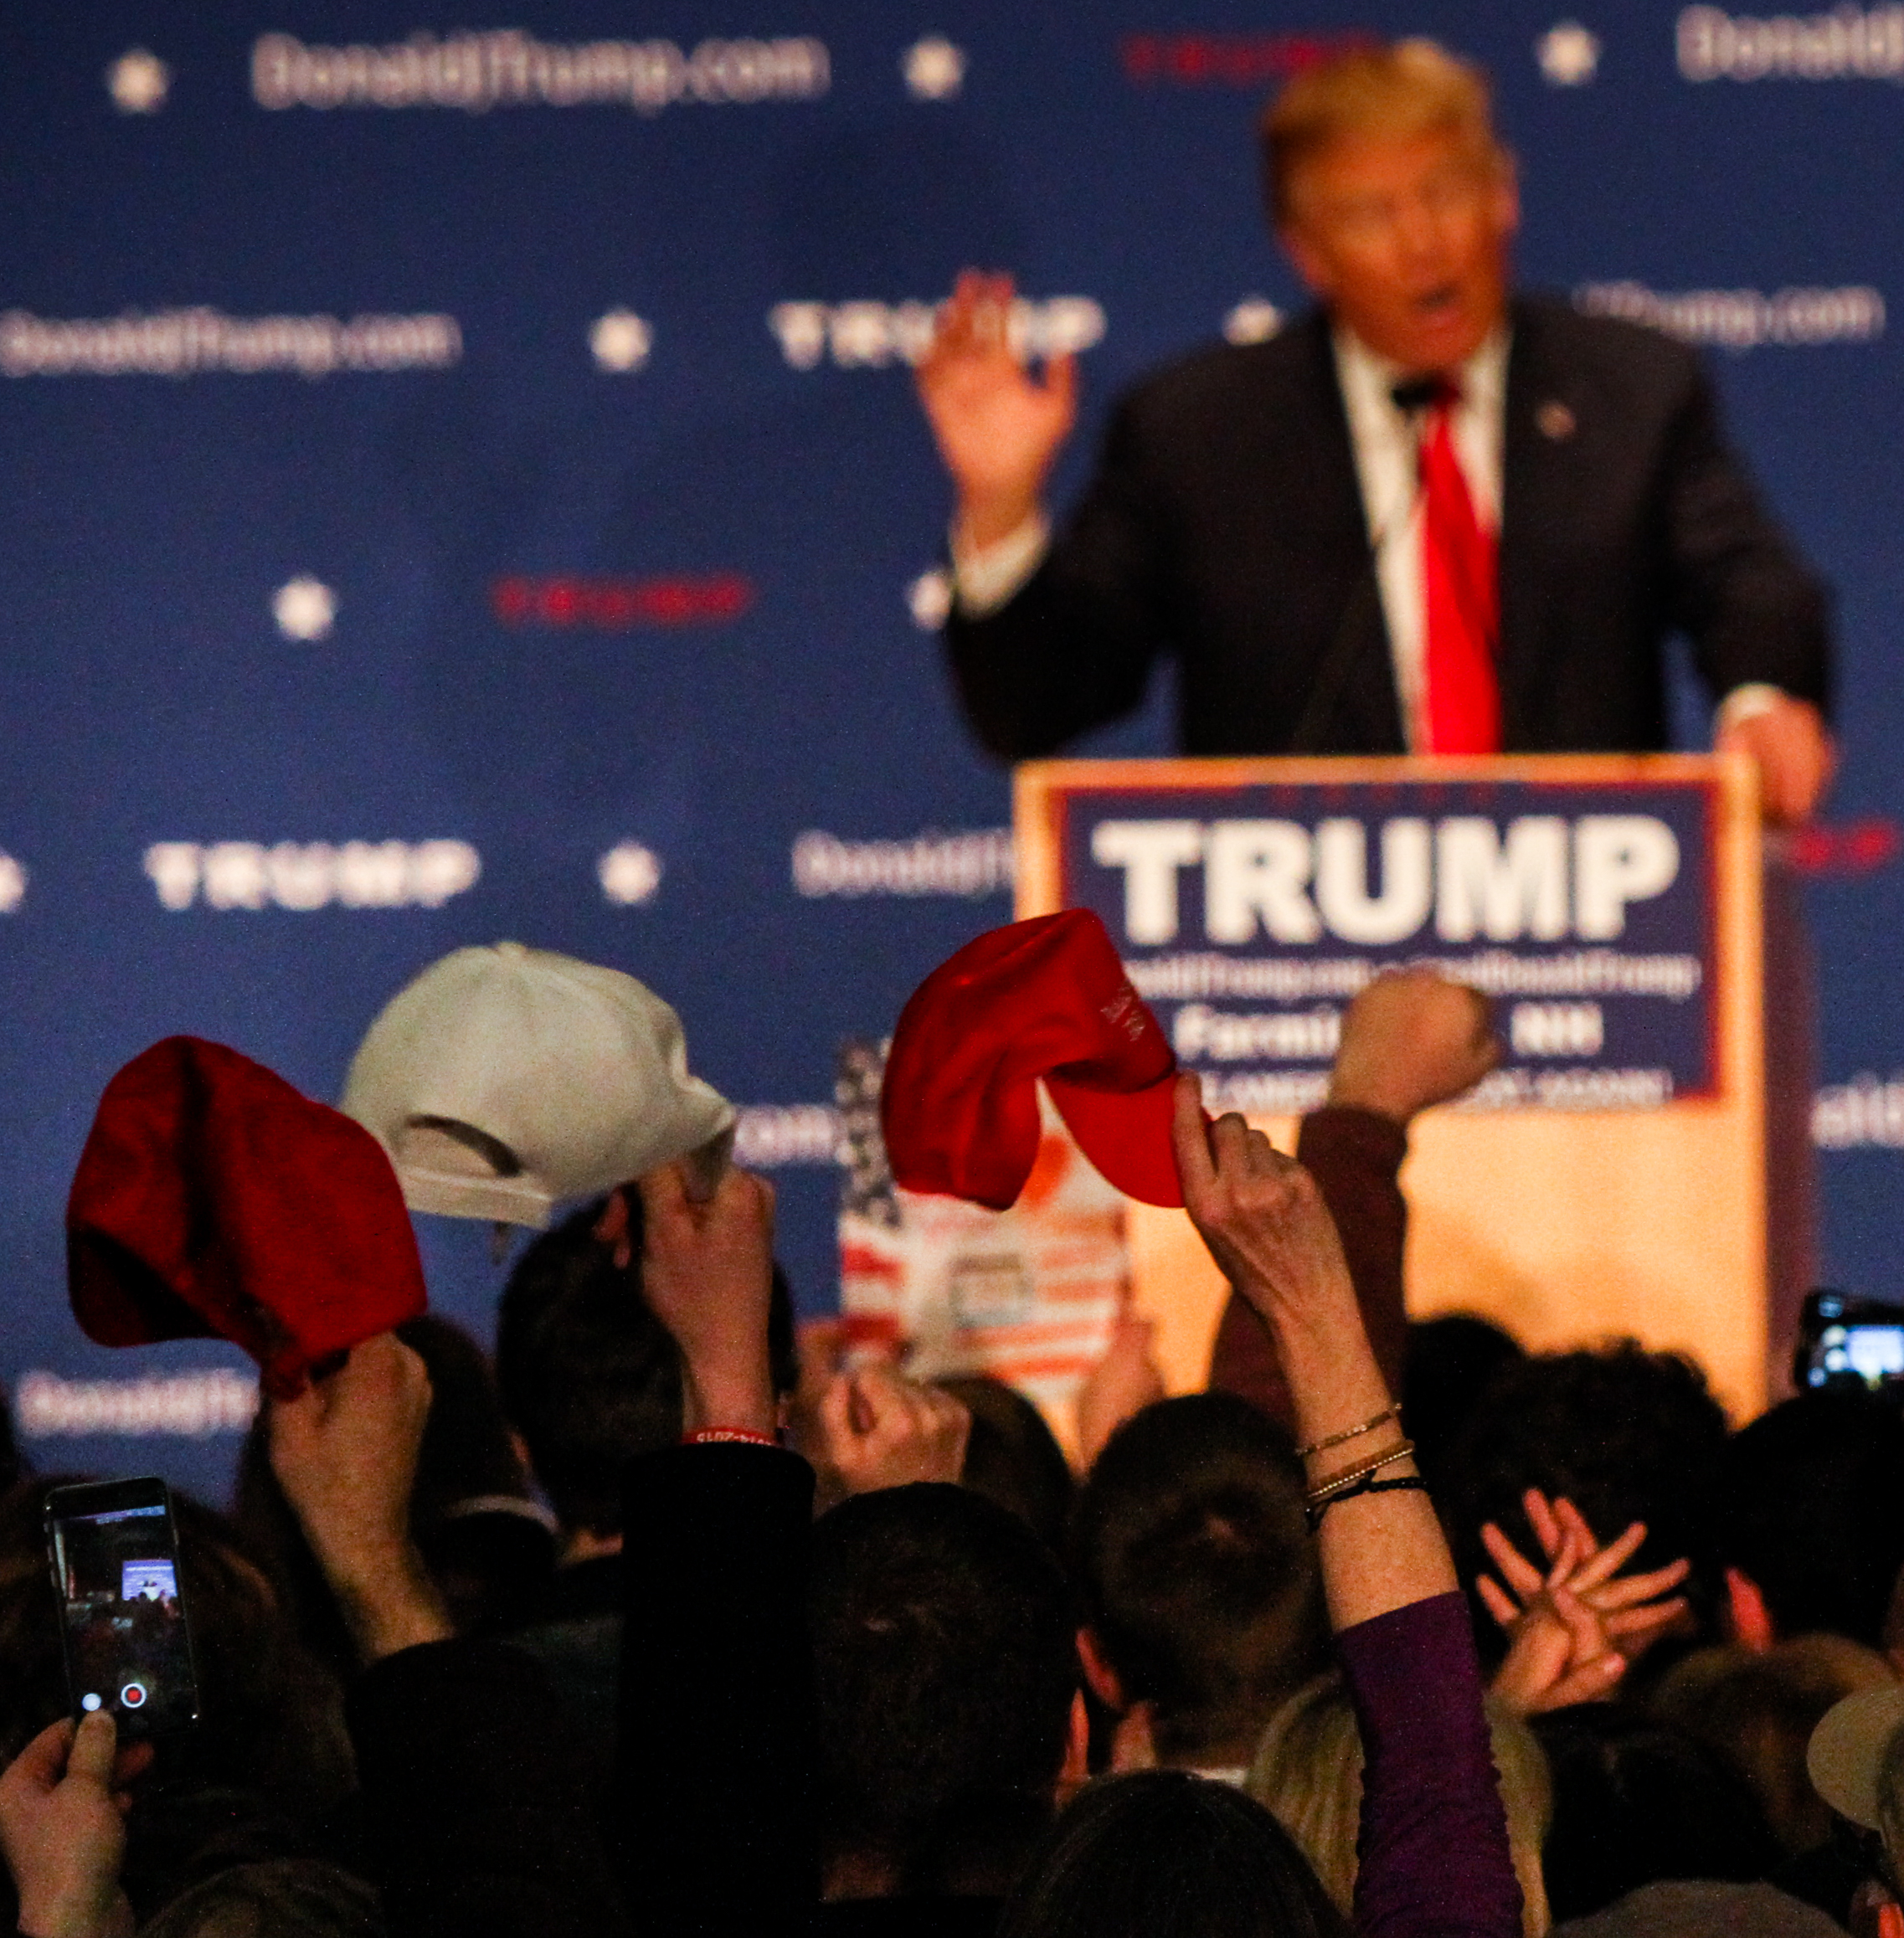 Attendees wave hats as Donald Trump speaks during a Donald J. Trump for President Rally at Farmington High School, 40 Thayer Dr., Farmington, NH on Jan. 26, 2016.